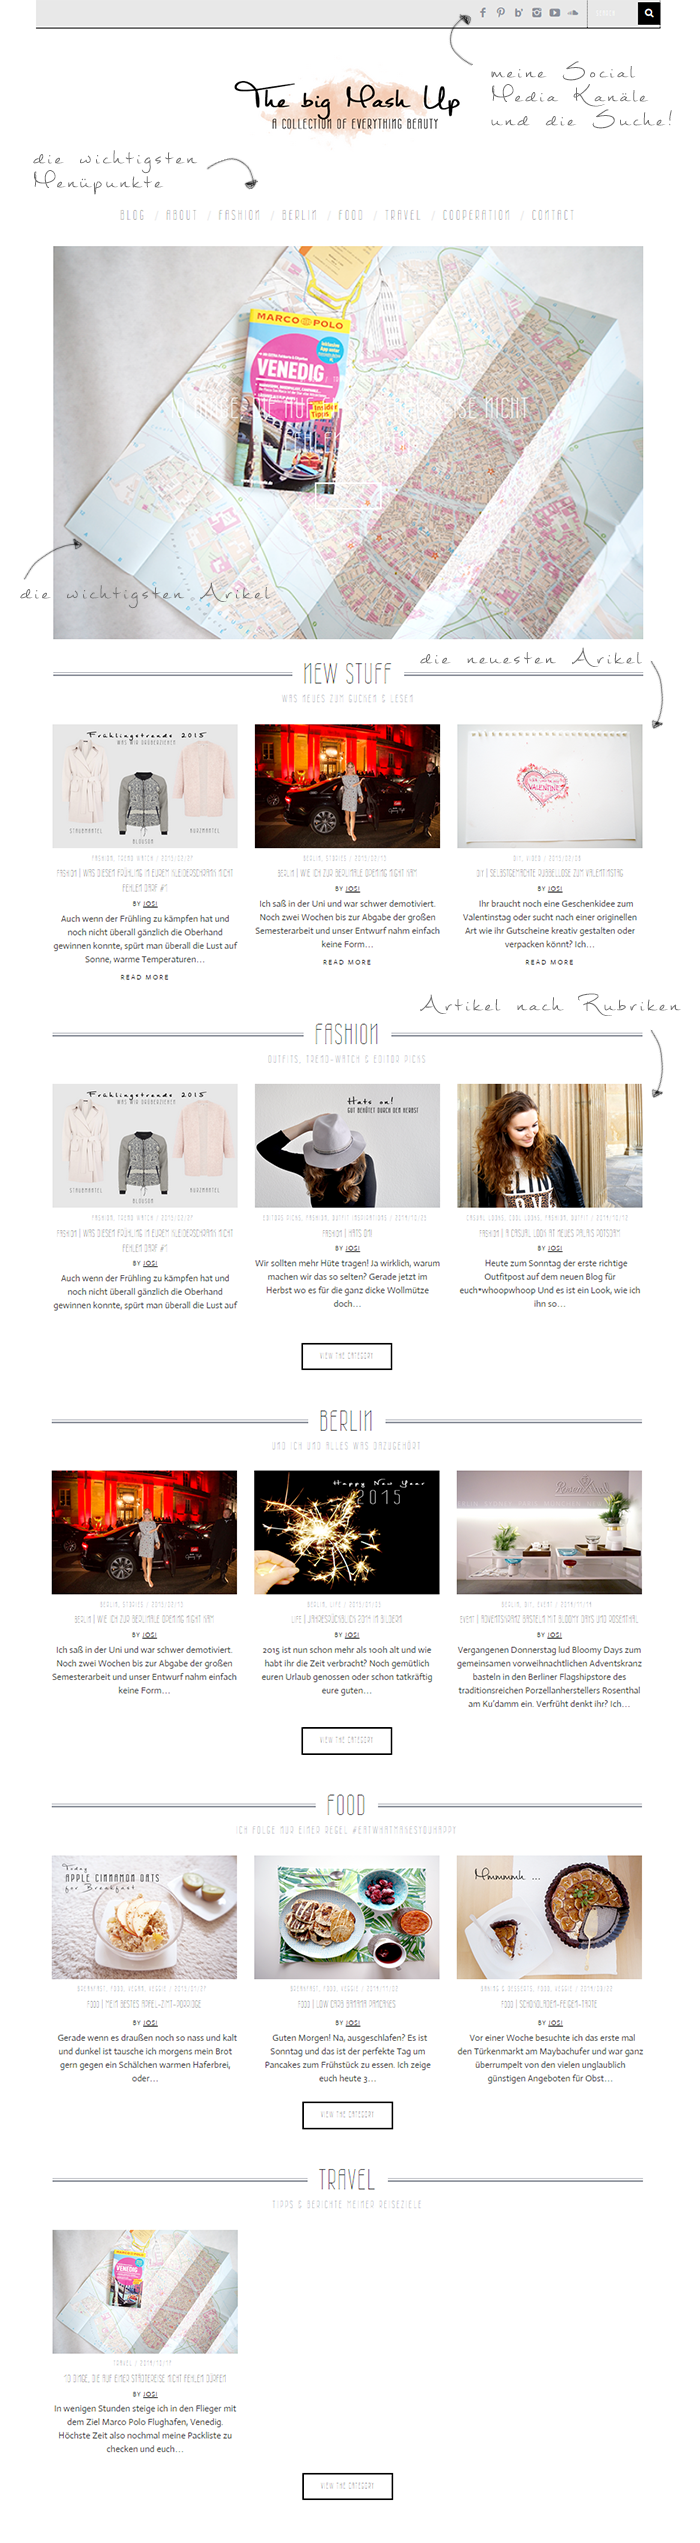 Wordpress Blog Theme Screenshot new Design